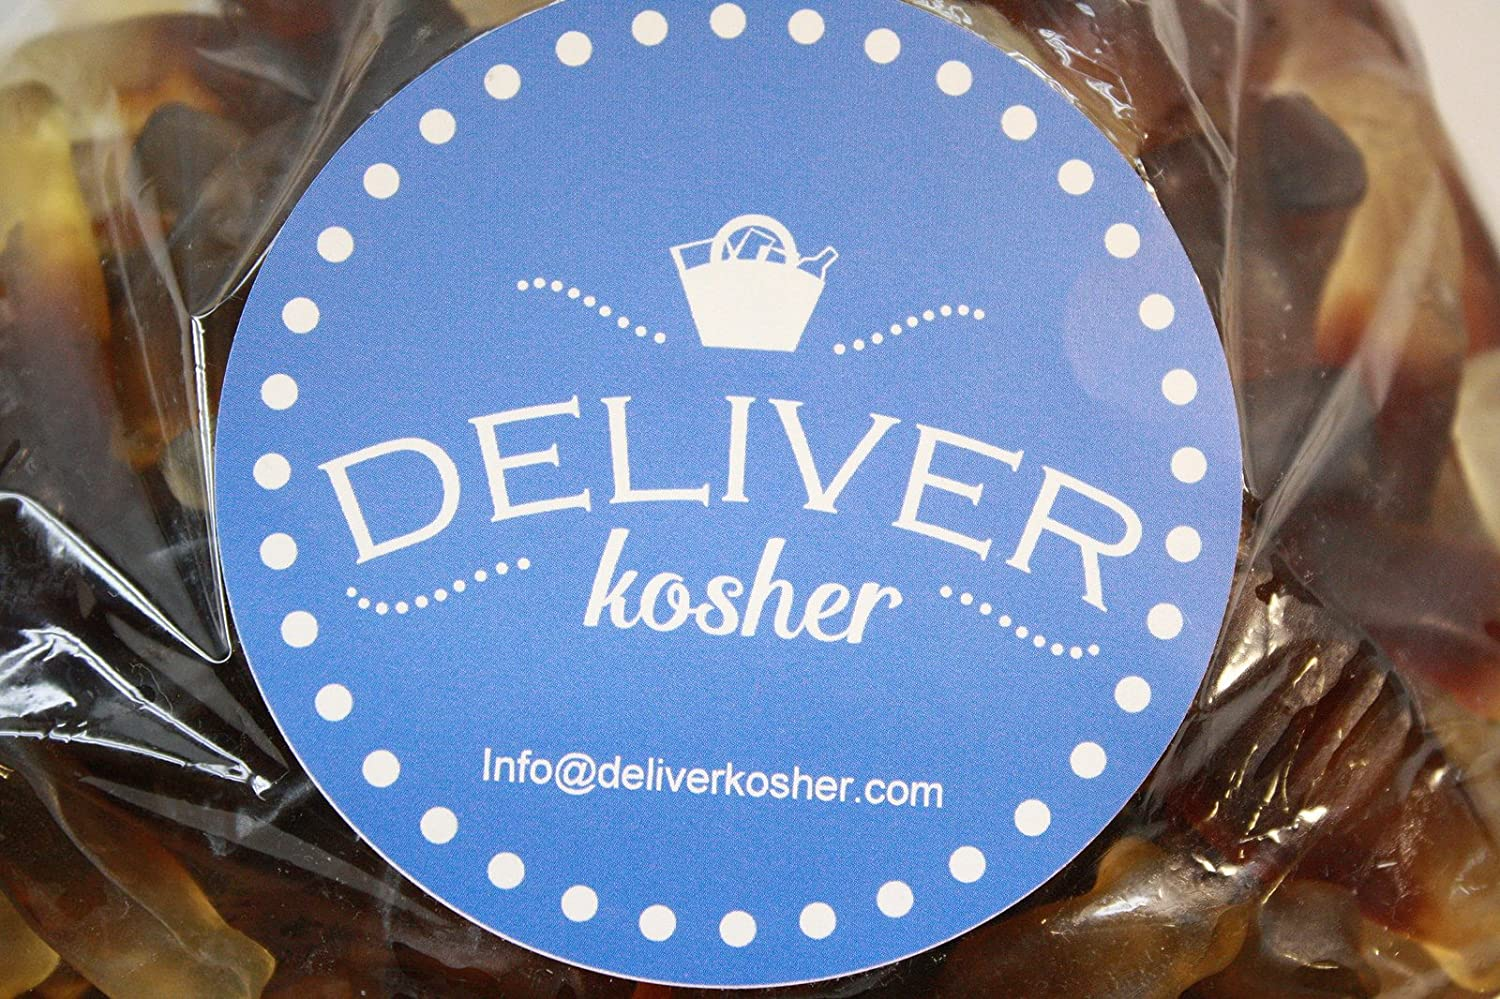 Amazon.com : Deliver Kosher Bulk Candy - Smooth Gummy Cola Bottles - 10lb Bag : Grocery & Gourmet Food